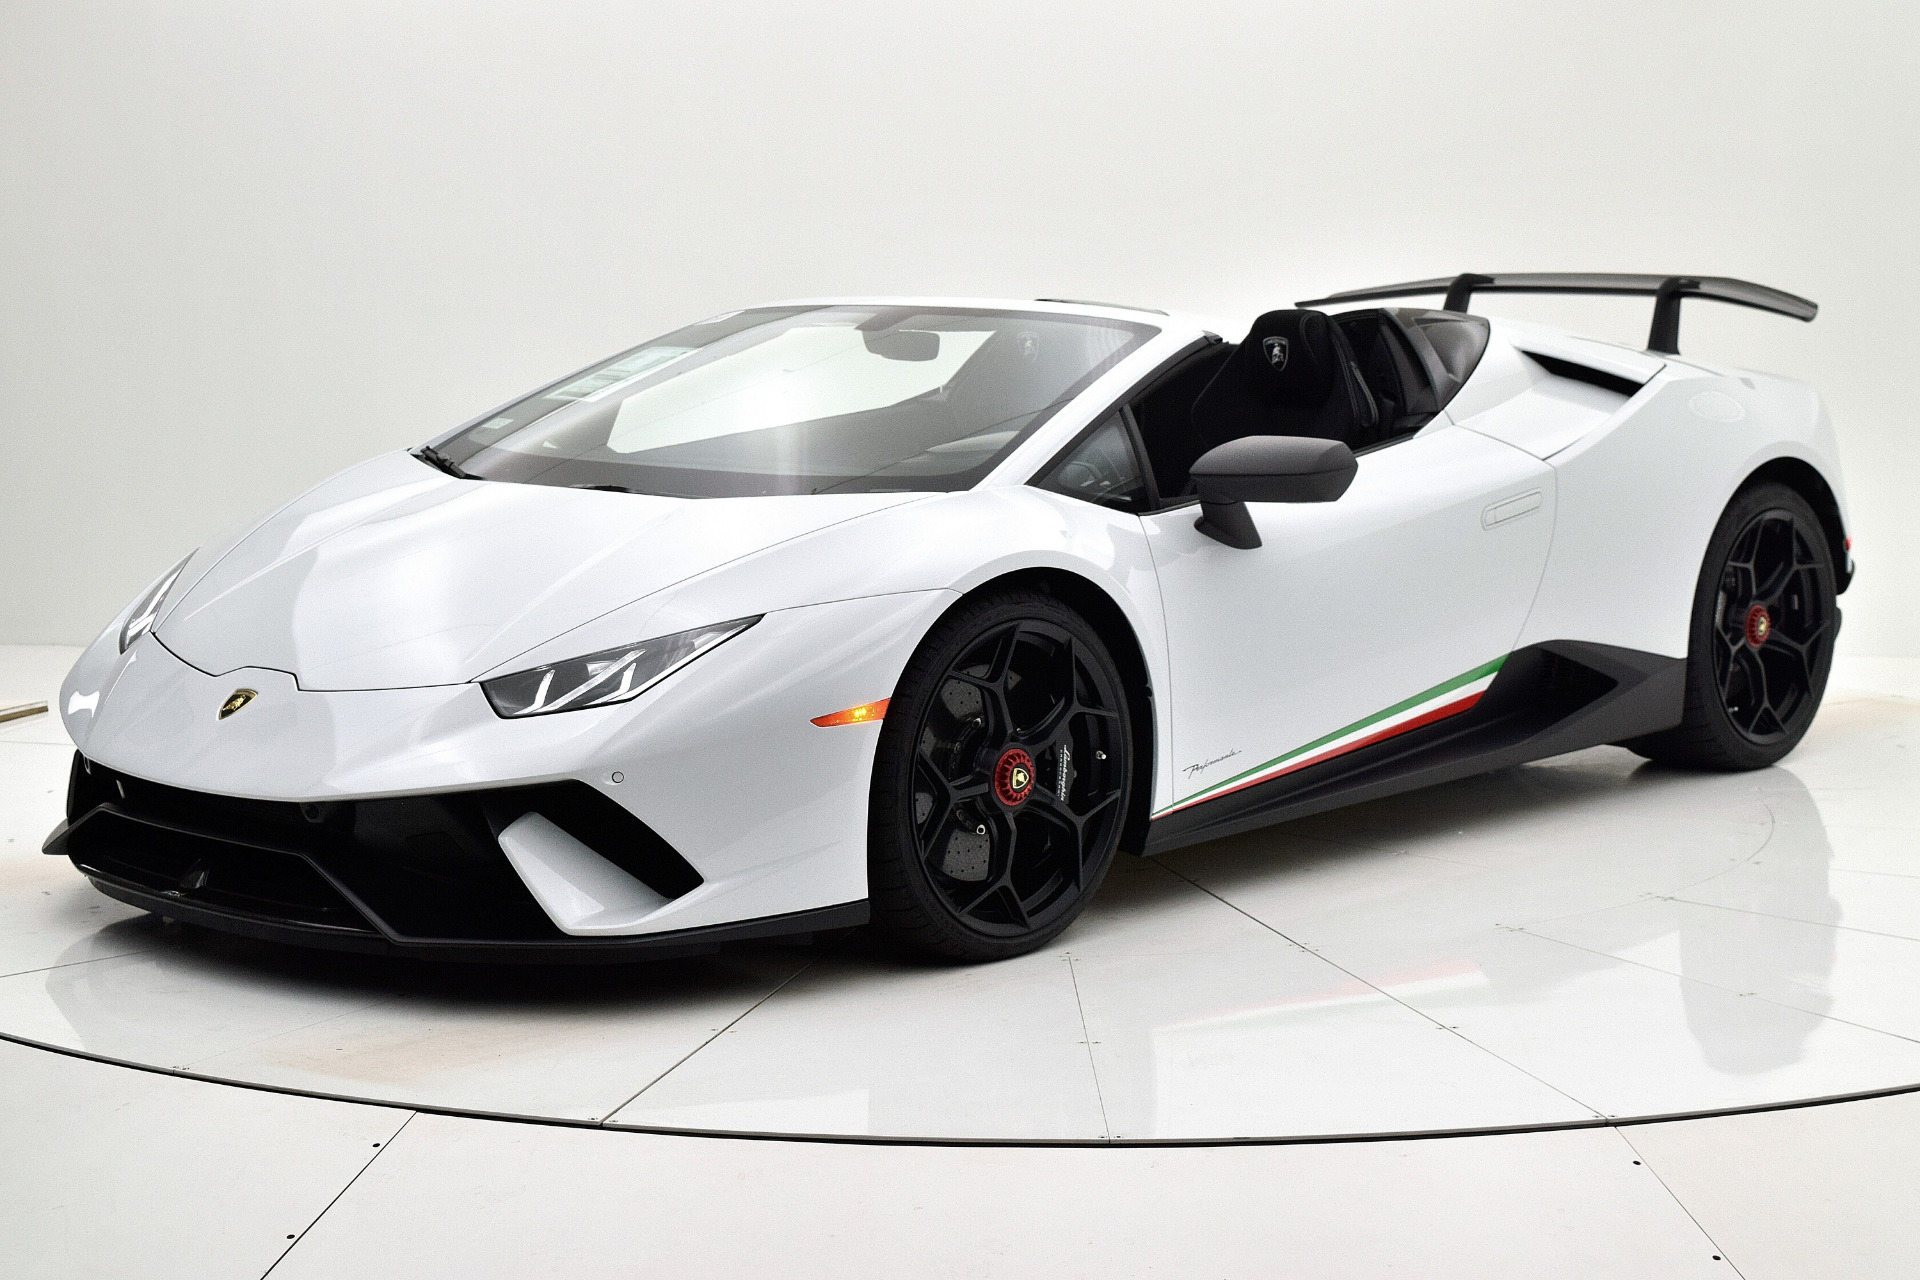 New 2019 Lamborghini Huracan Lp640 4 Performante Spyder For Sale